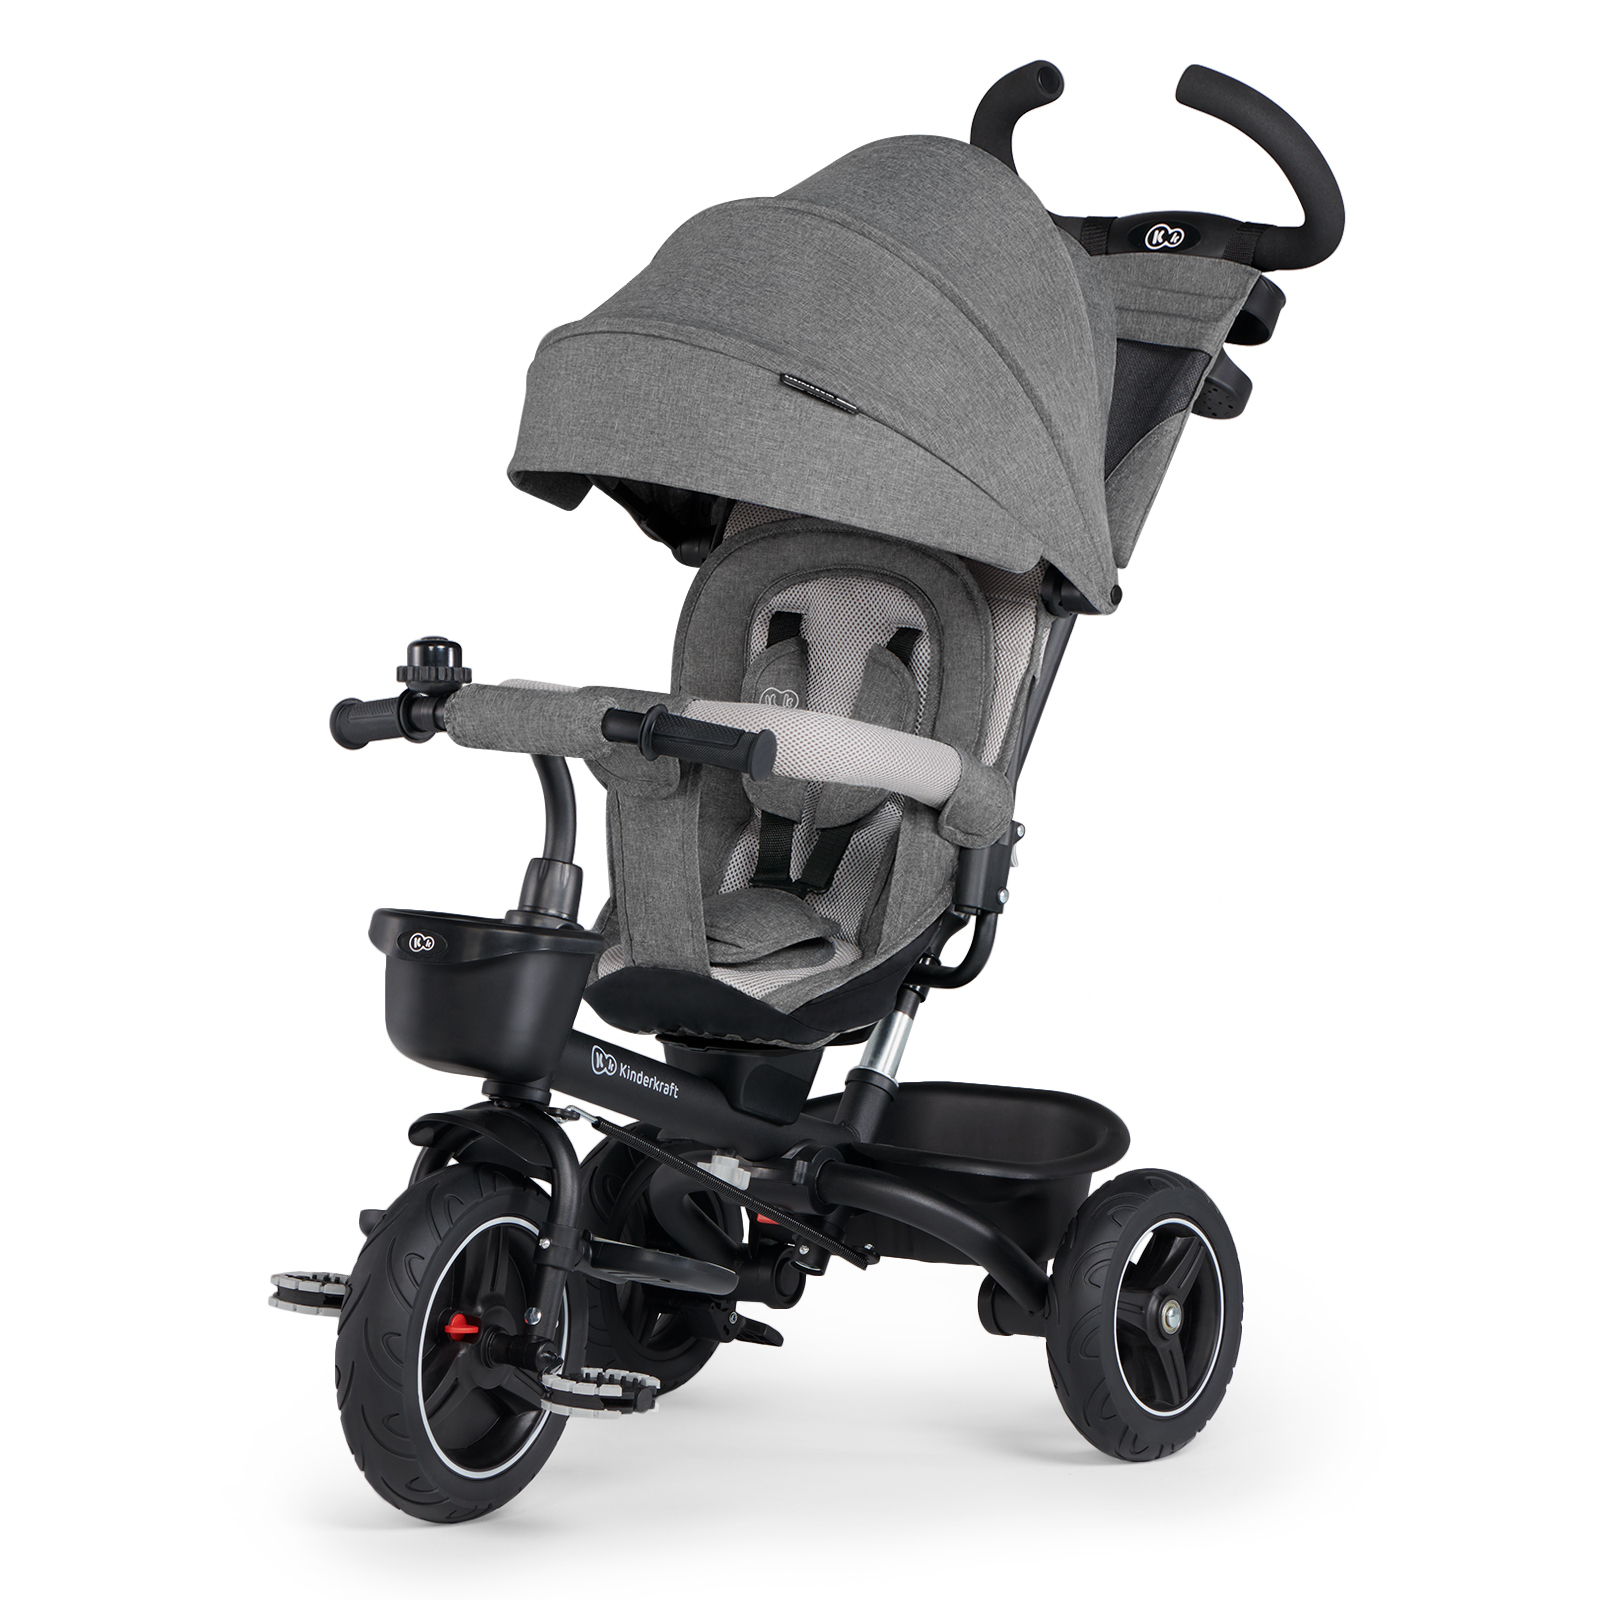 Велосипед Kinderkraft Spinstep Platinum Grey складной